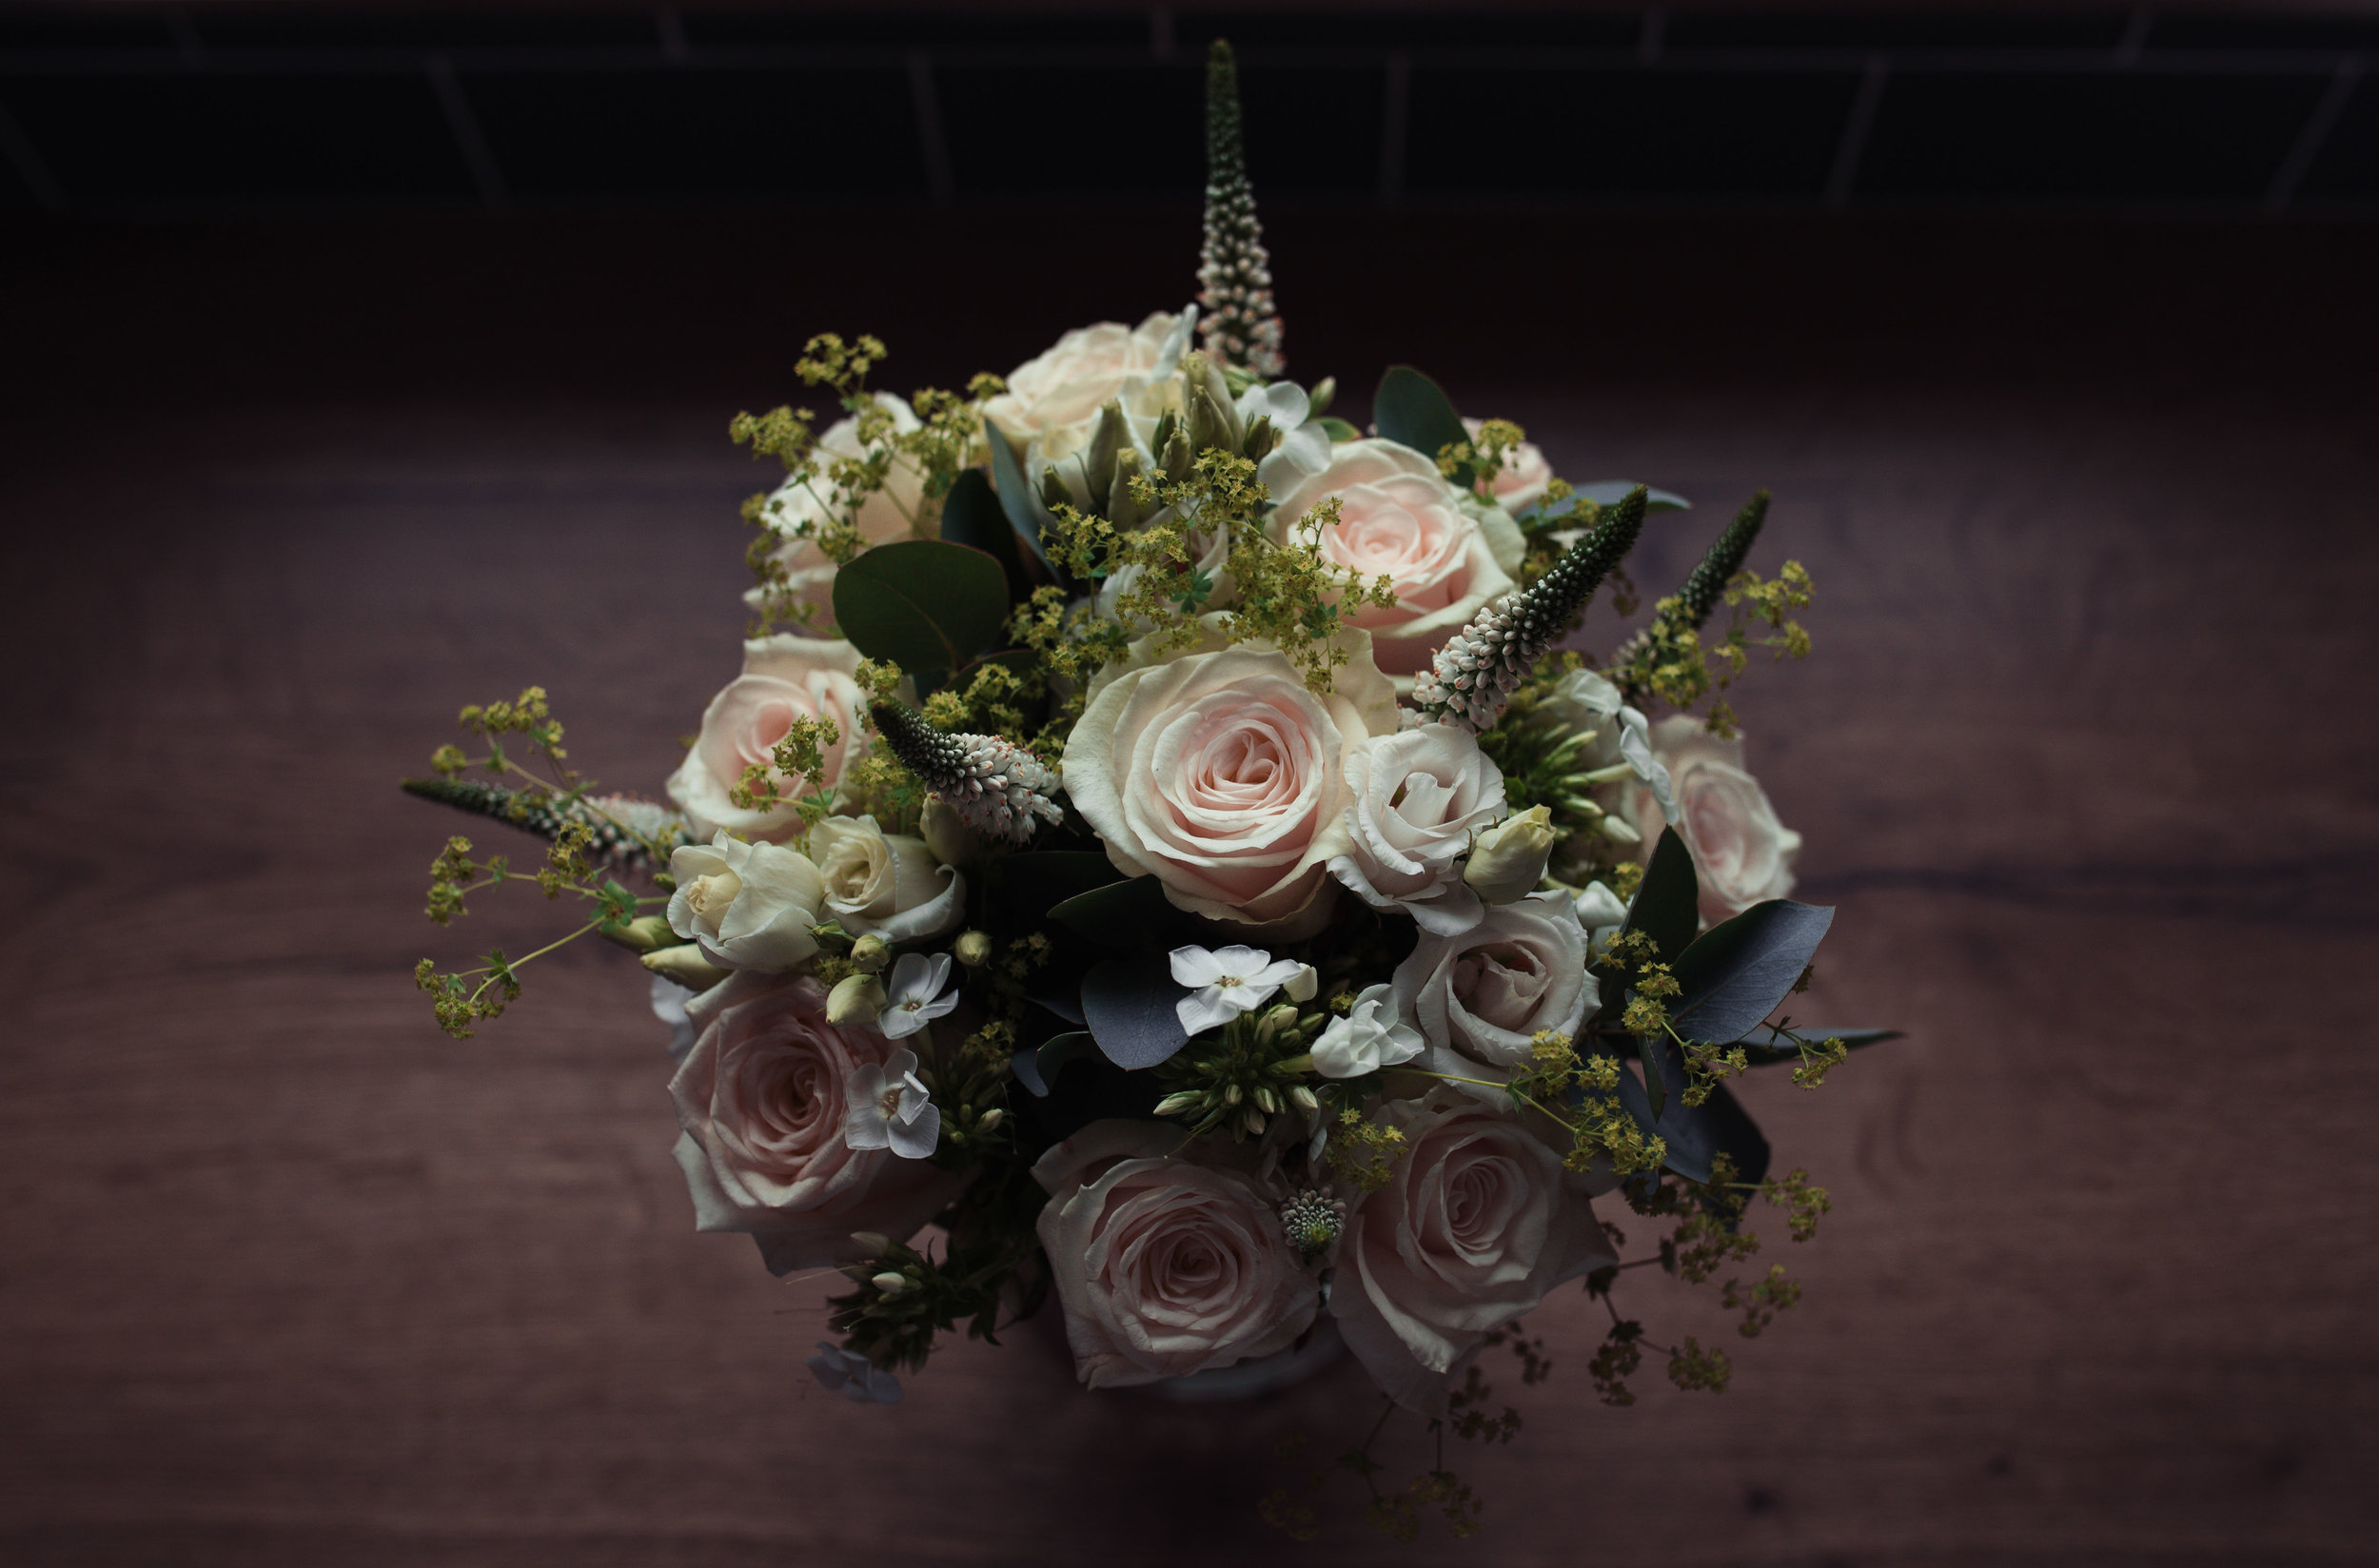 The brides cream-coloured bouquet of roses